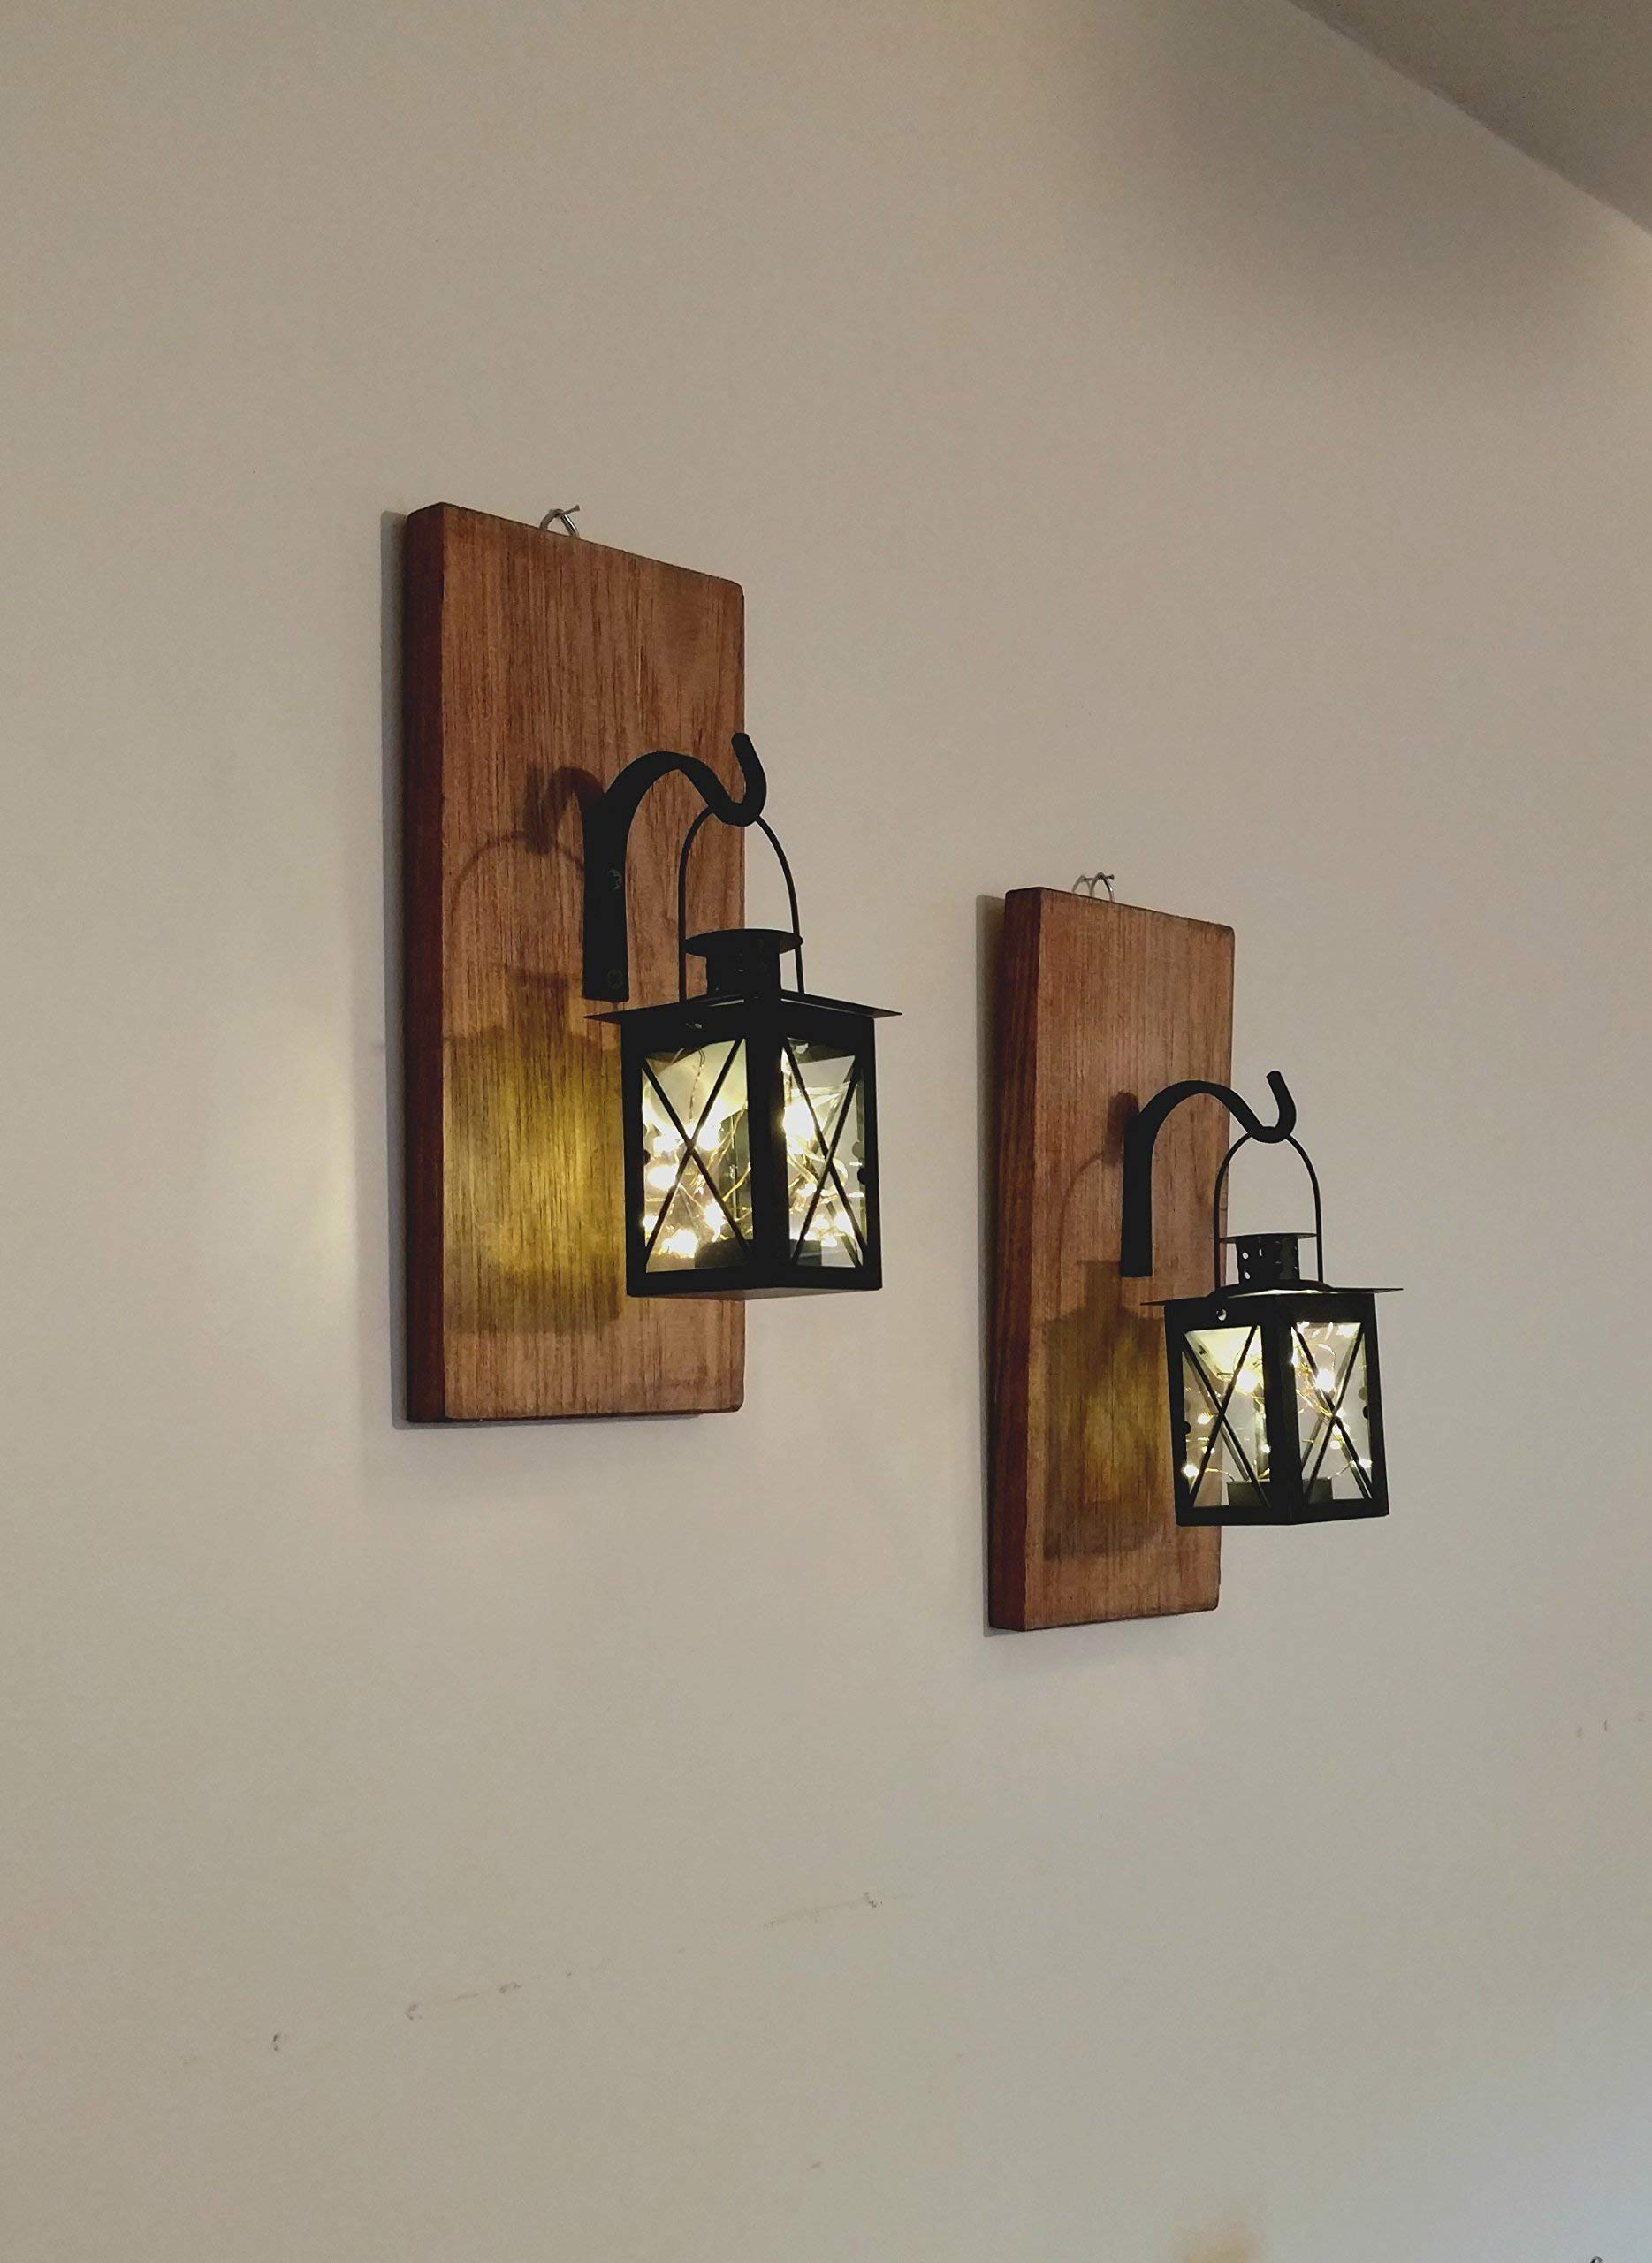 Rustic Wall Mounted Hanging Metal Lanterns With Lights, Set of 2, Rustic Home Decor by Twin Oak Rustics